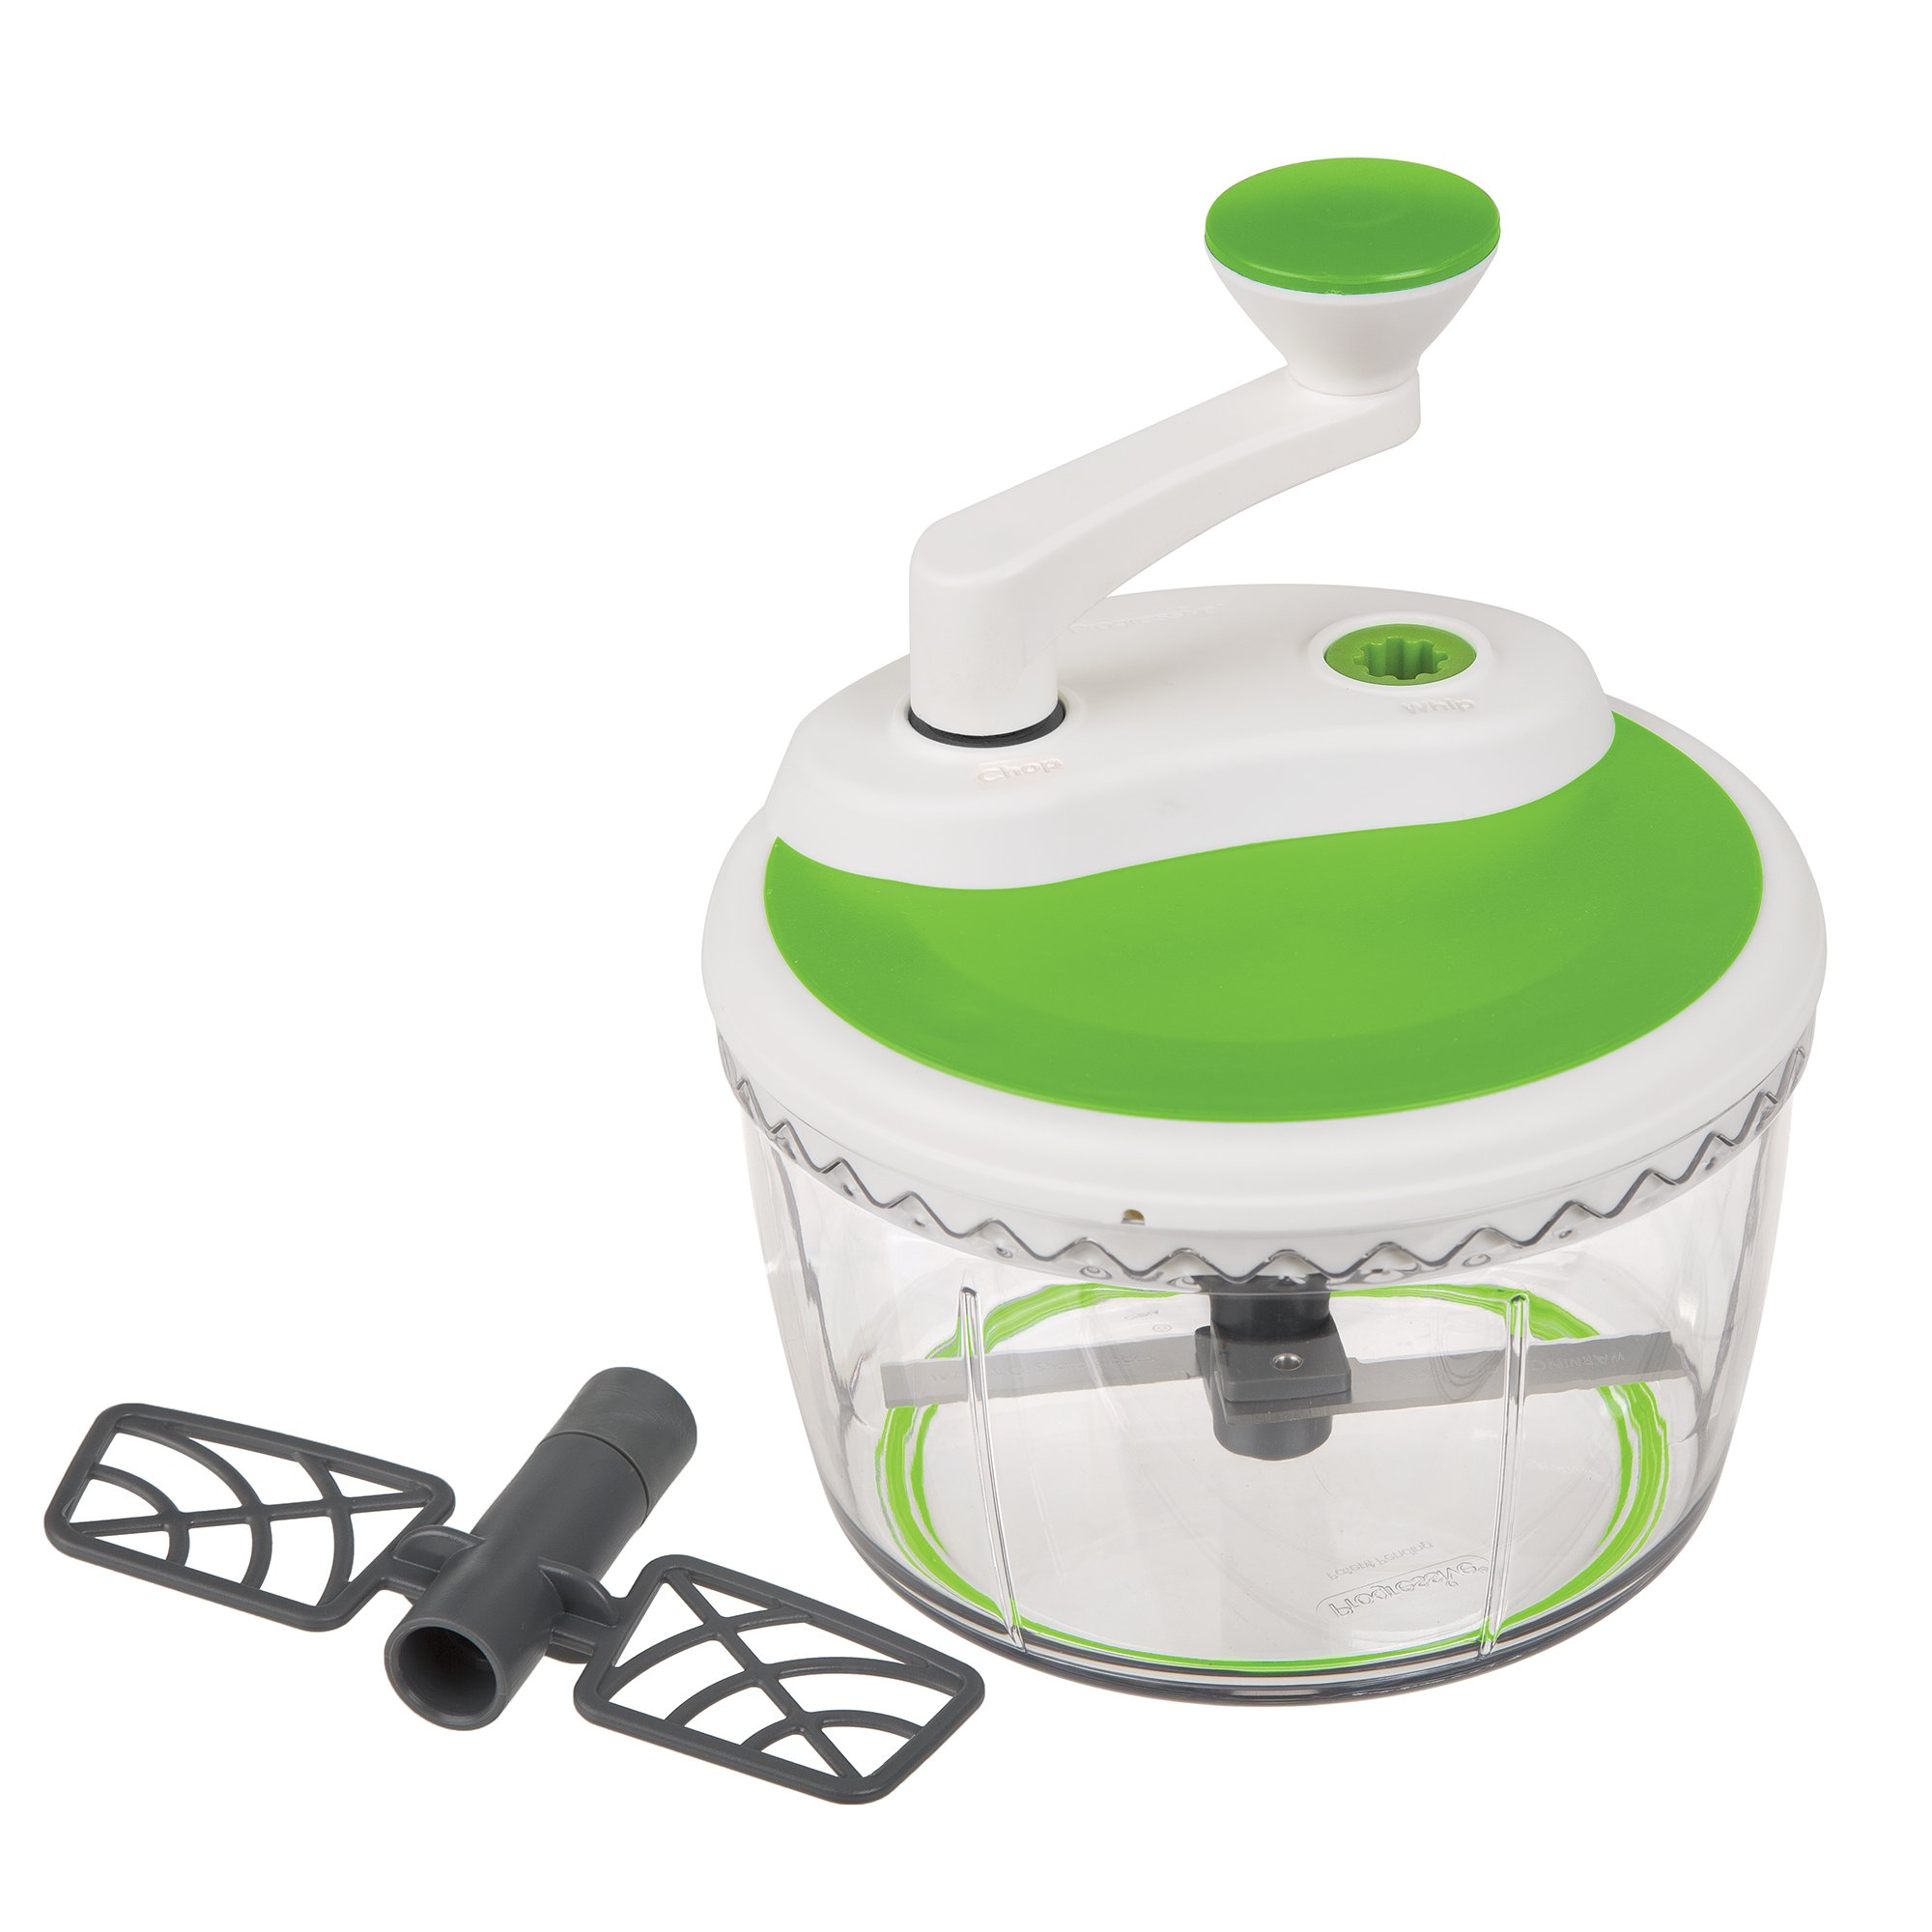 Prepworks by Progressive Dual Speed Chop & Whip, Two Speed Settings, Non-Skid Base, Whip Cream, Dressings, Mincing Onions, Salsa, Mixer, Vegetables, Coleslaw